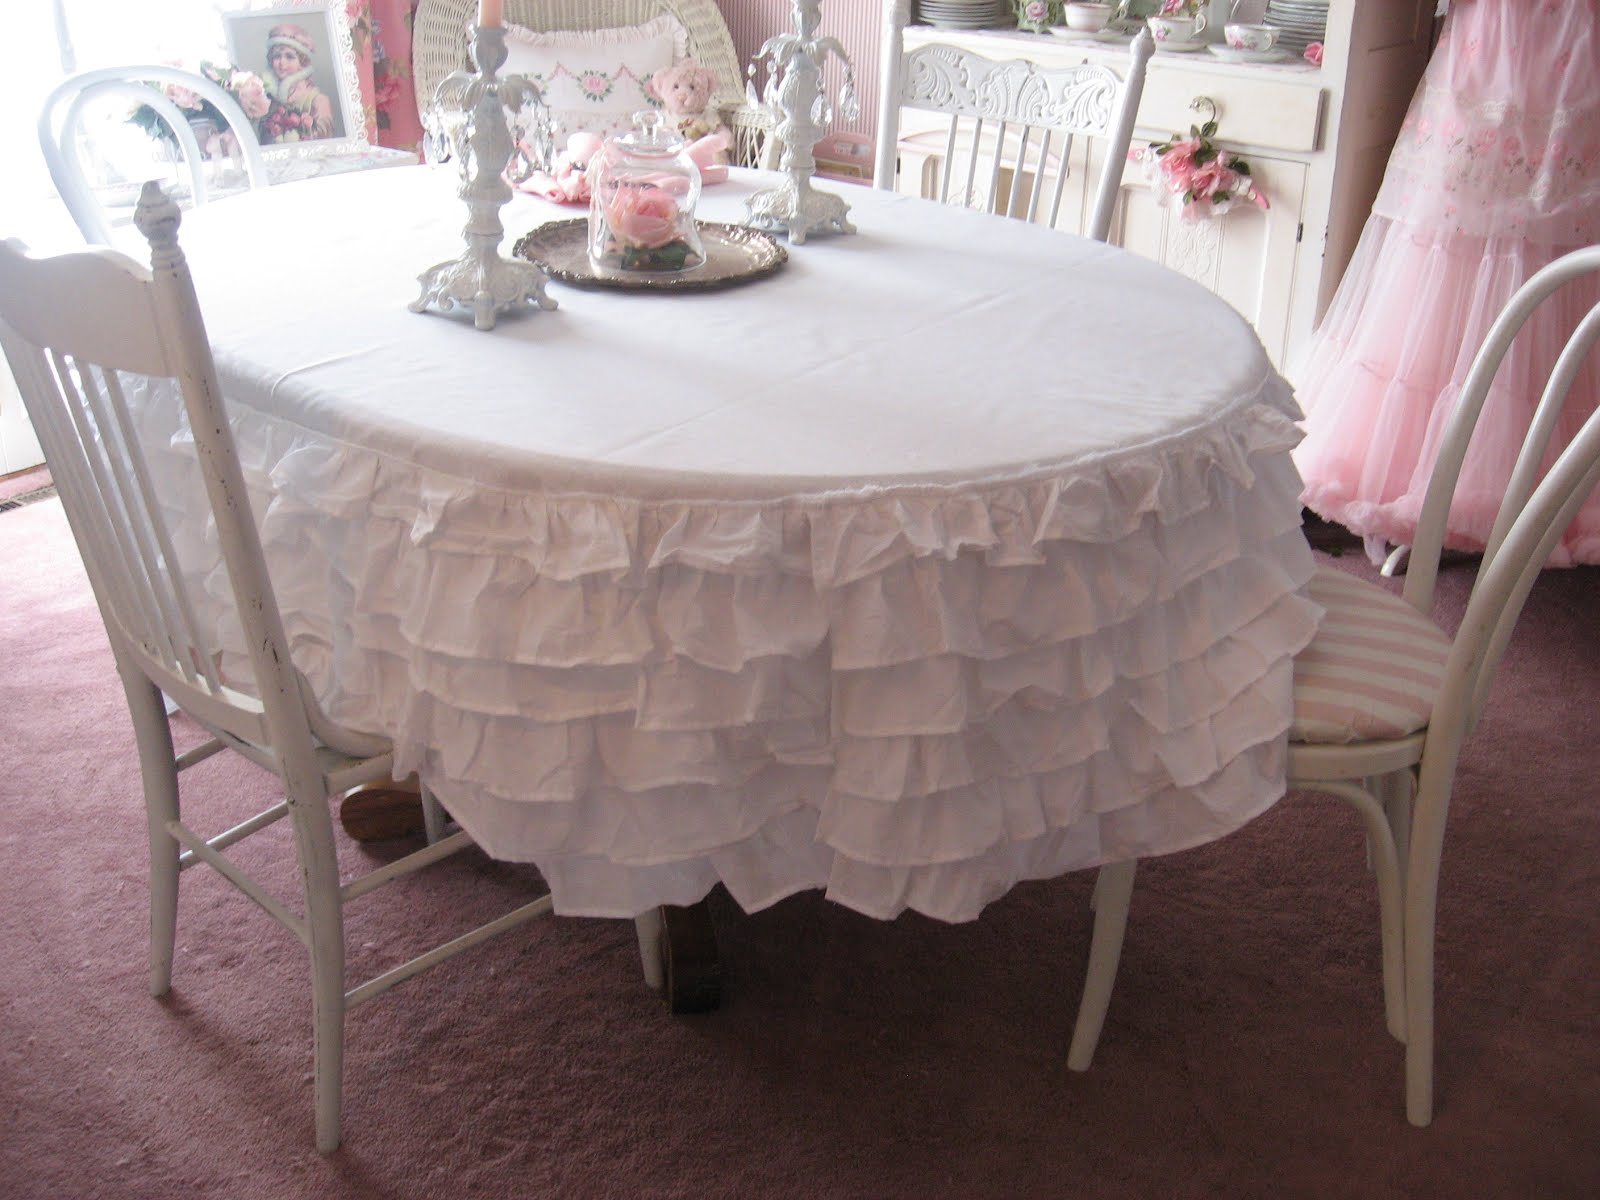 Shabby Cats and Roses Ruffled Bedskirt turned Tablecloth